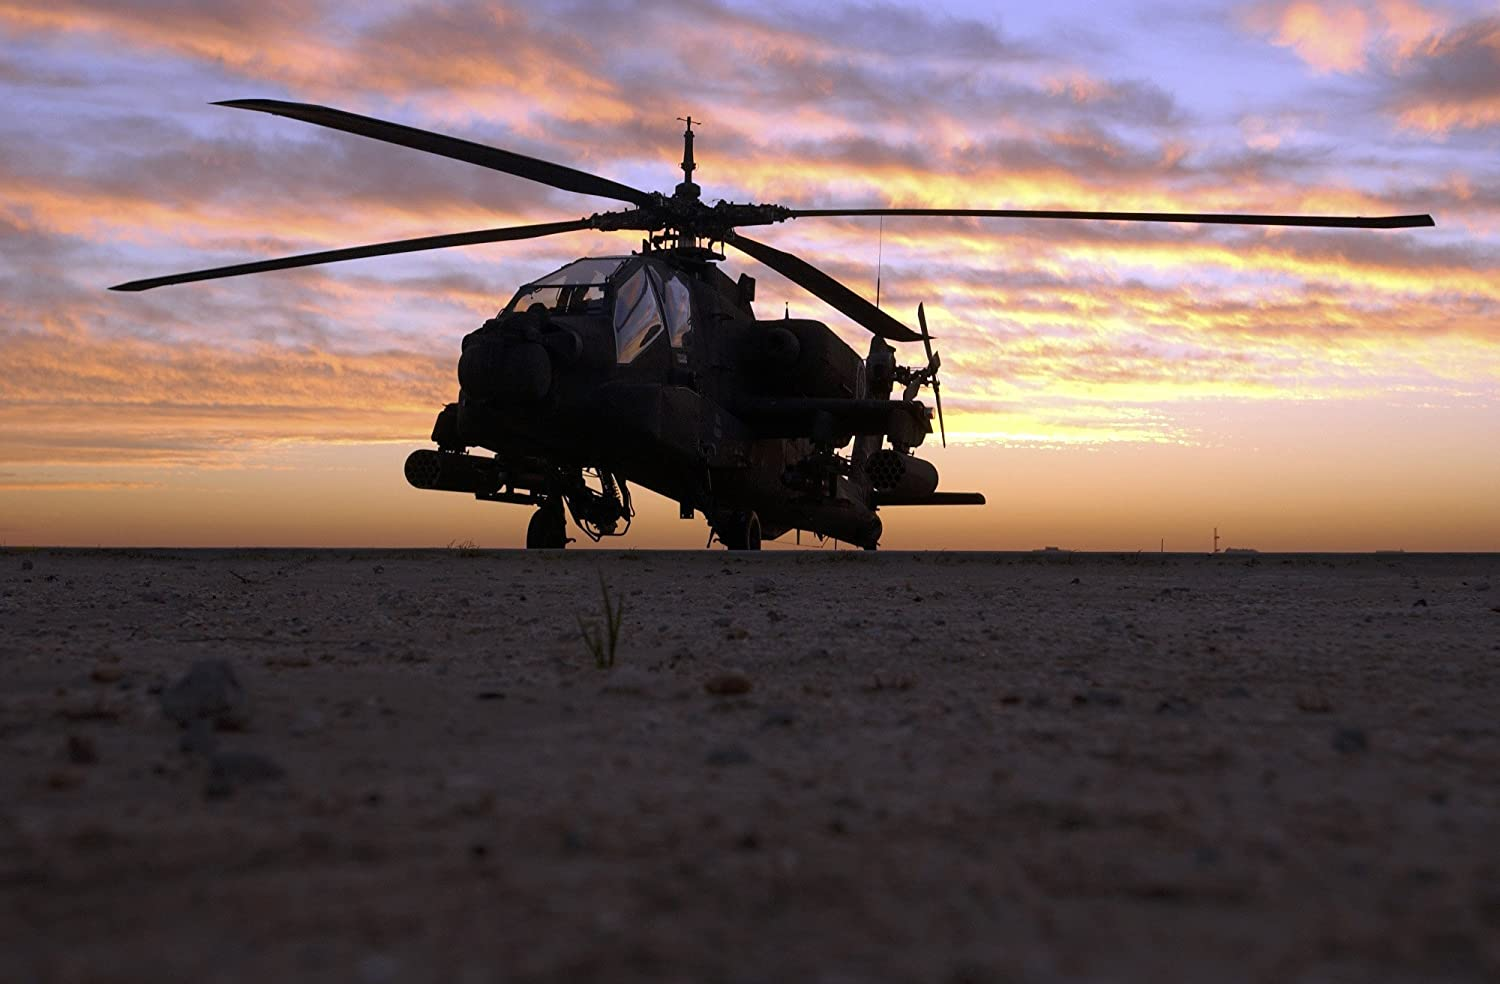 US forces left behind $85 billion worth of equipment for the Taliban